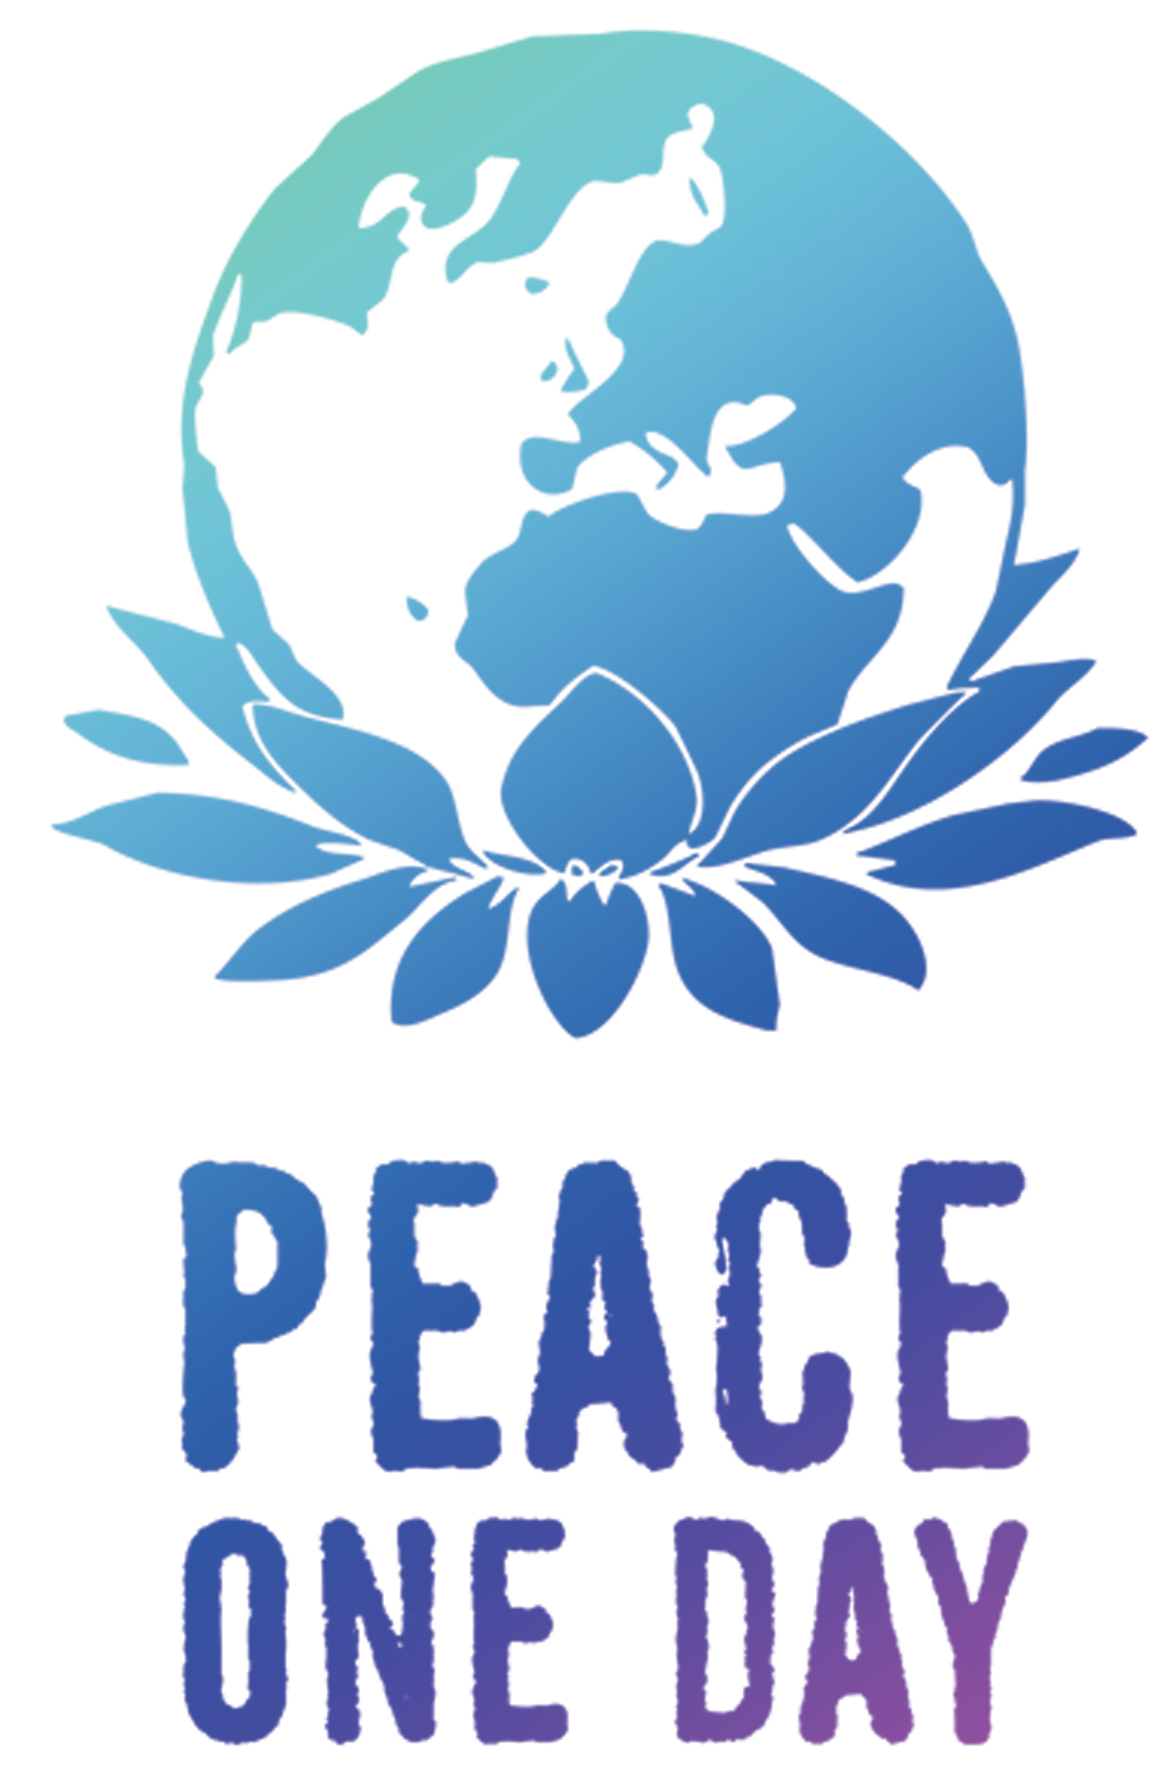 Trademark of Peace One Day Ltd